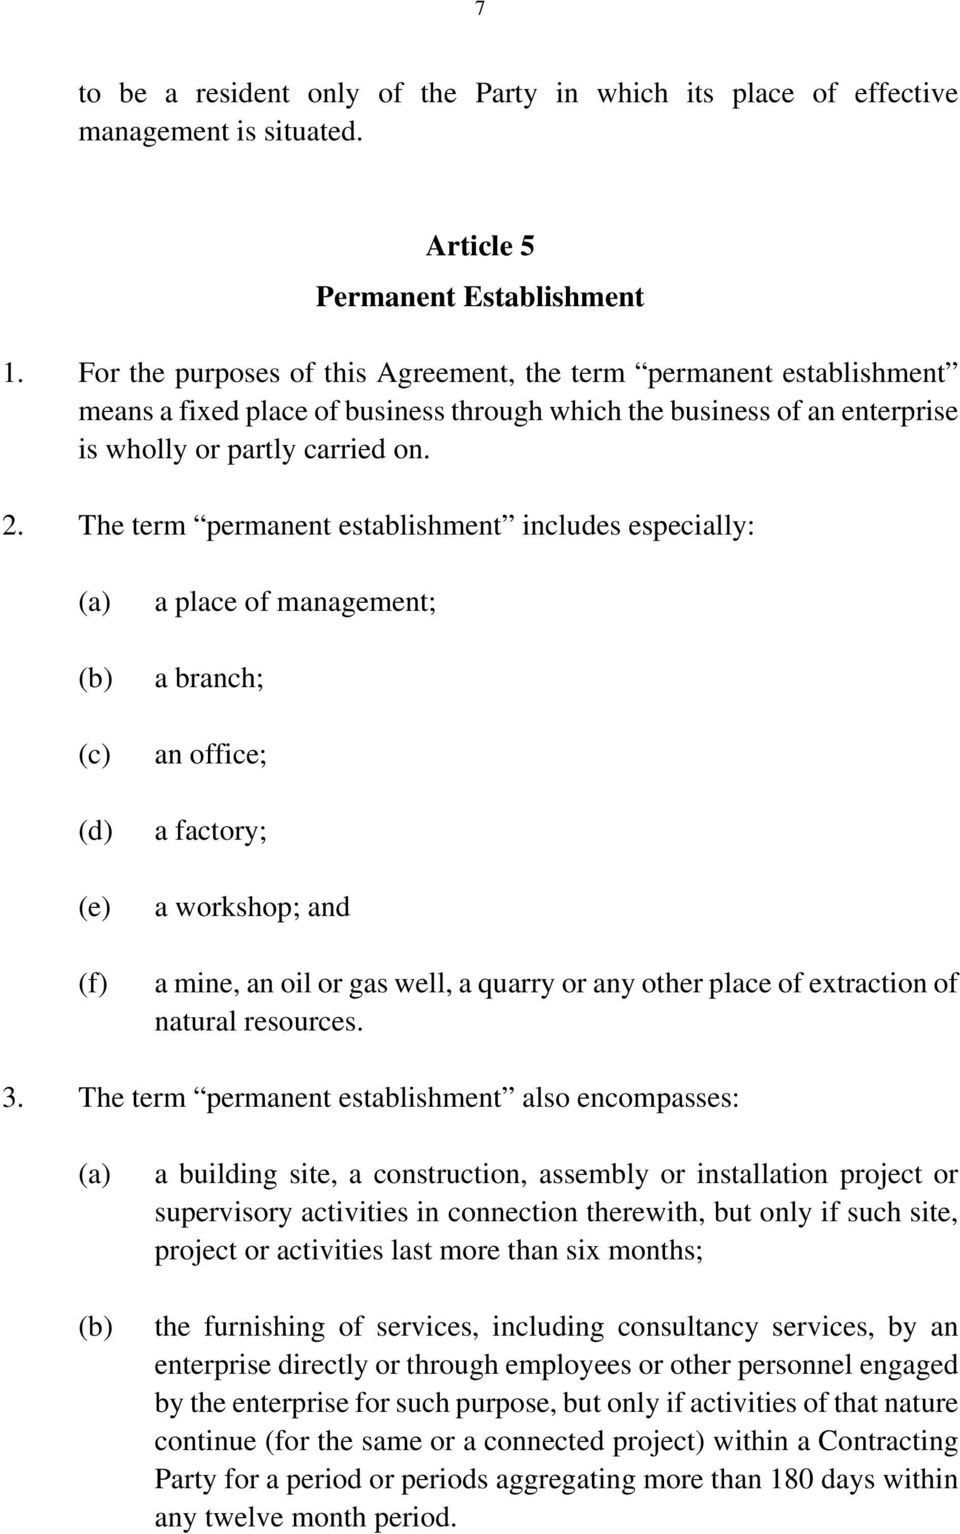 The term permanent establishment includes especially: (c) (d) (e) (f) a place of management; a branch; an office; a factory; a workshop; and a mine, an oil or gas well, a quarry or any other place of